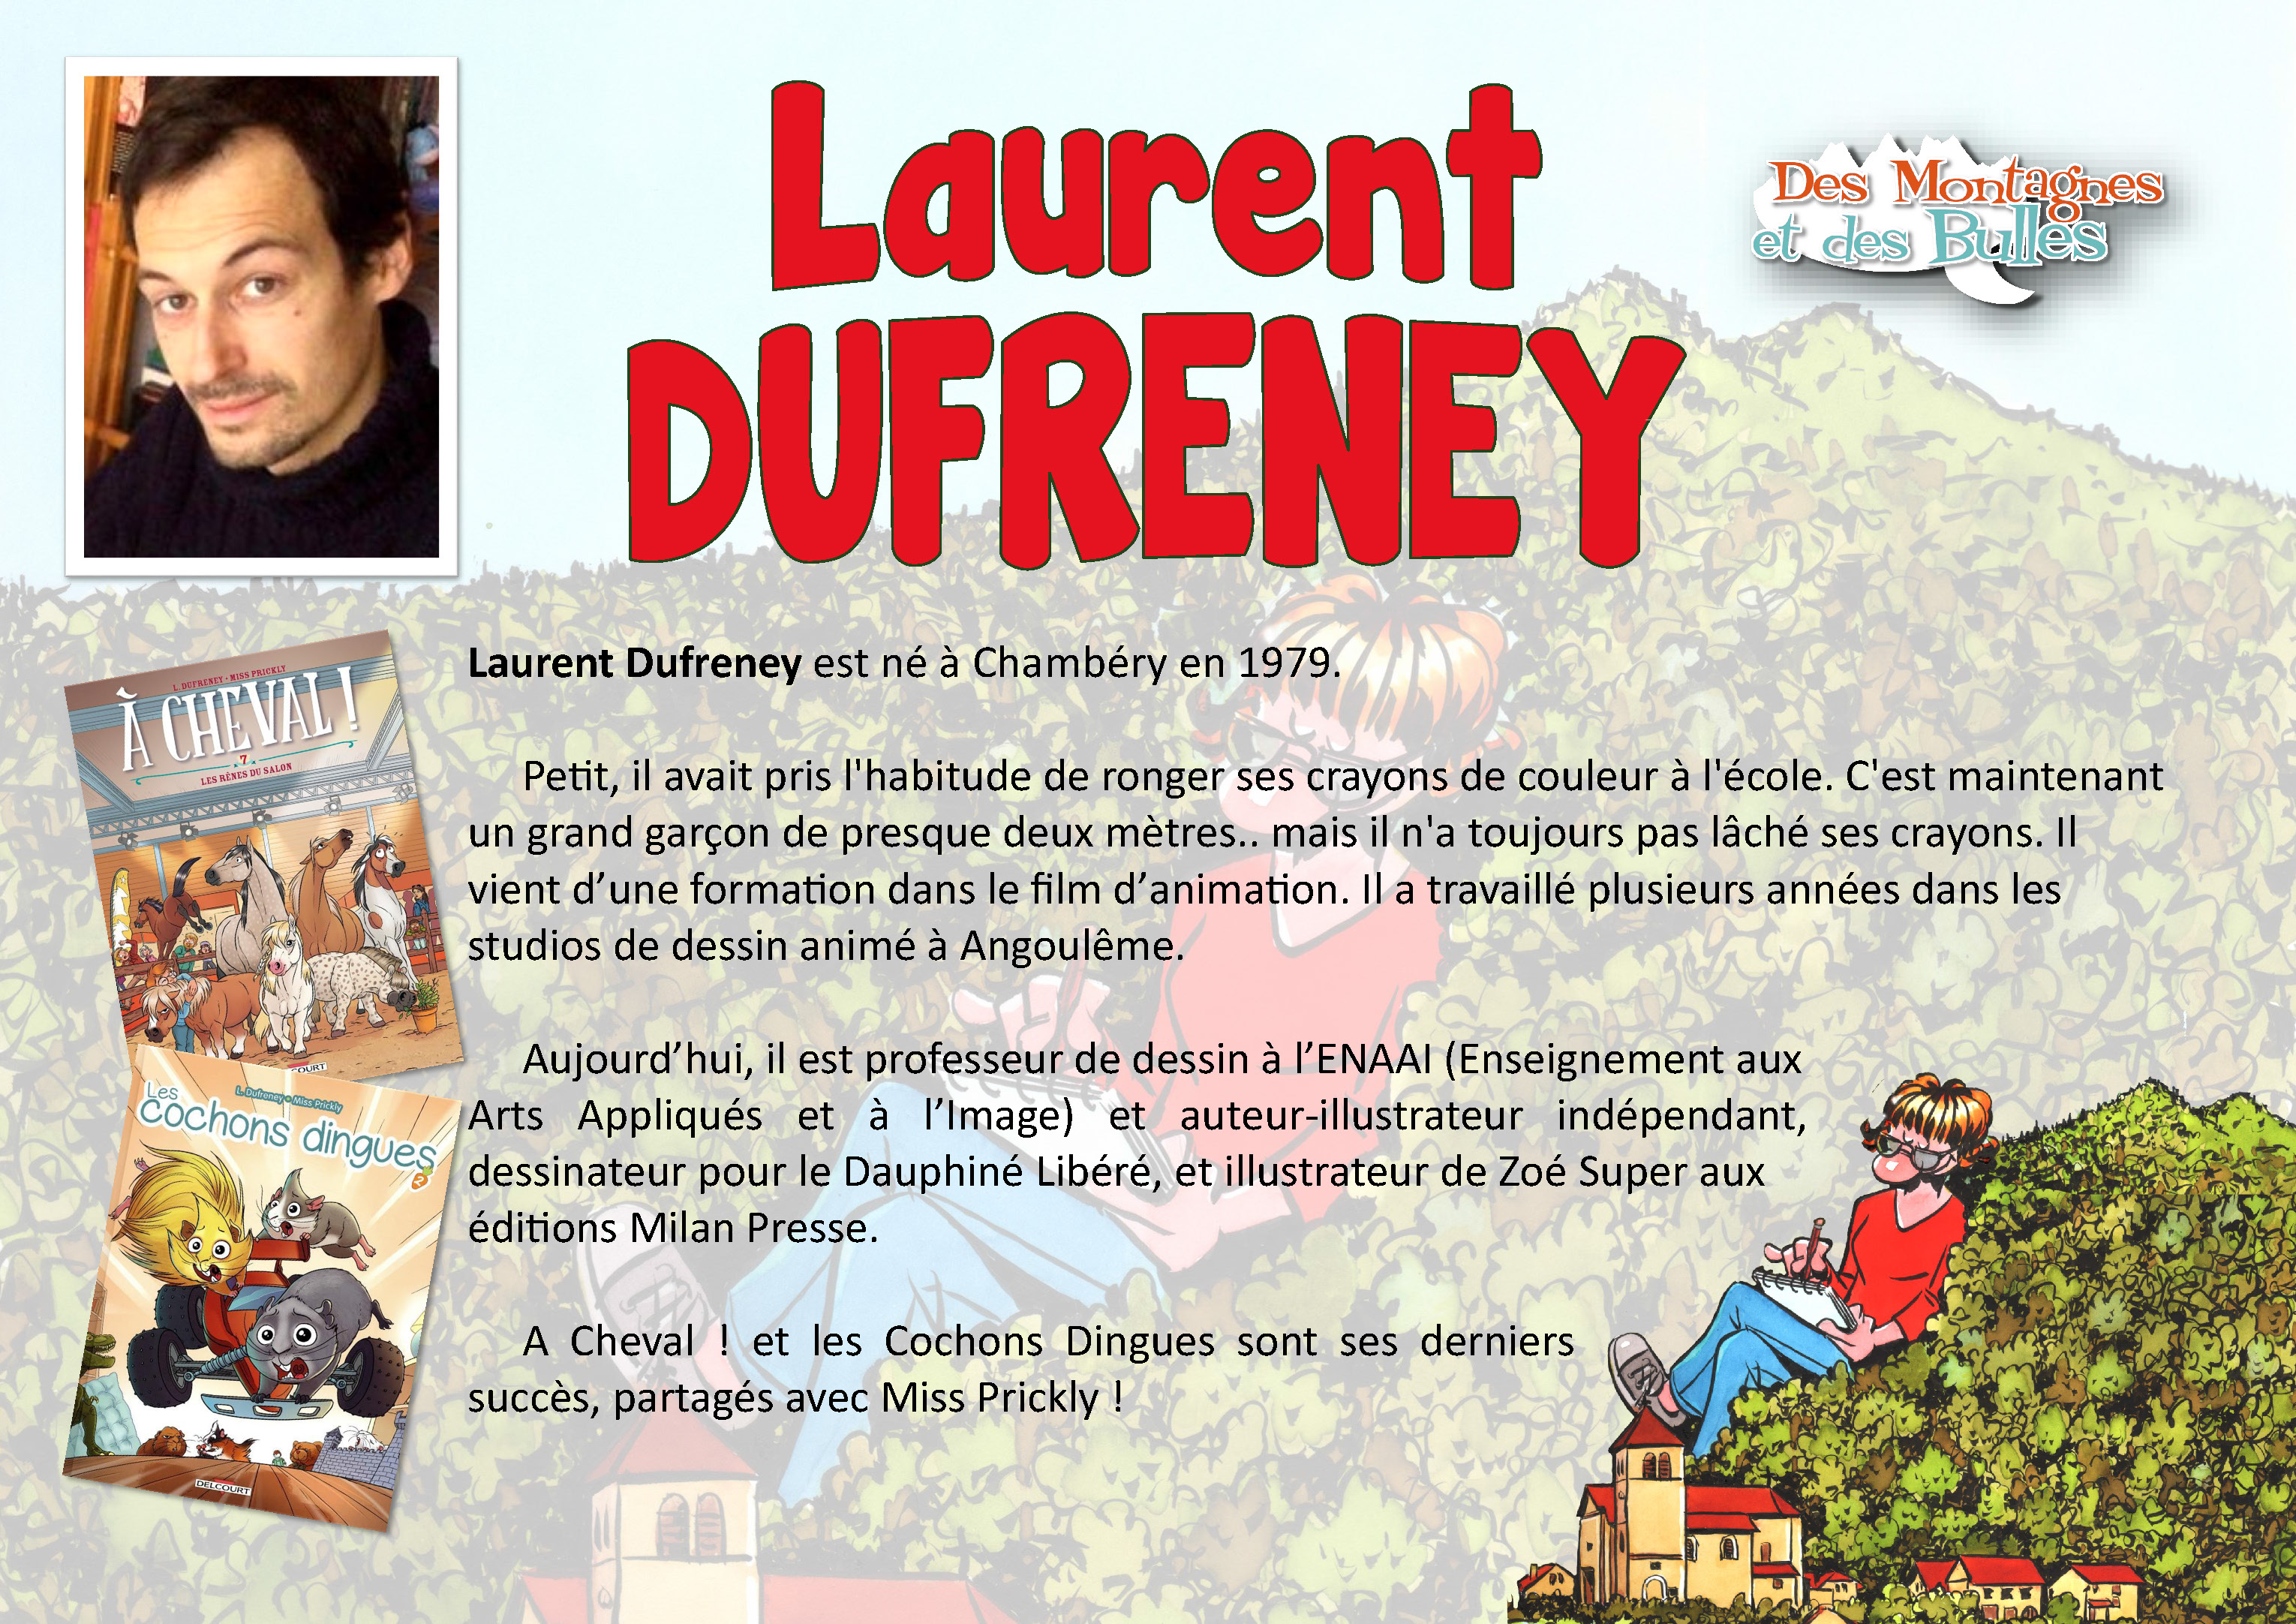 Laurent Dufreney